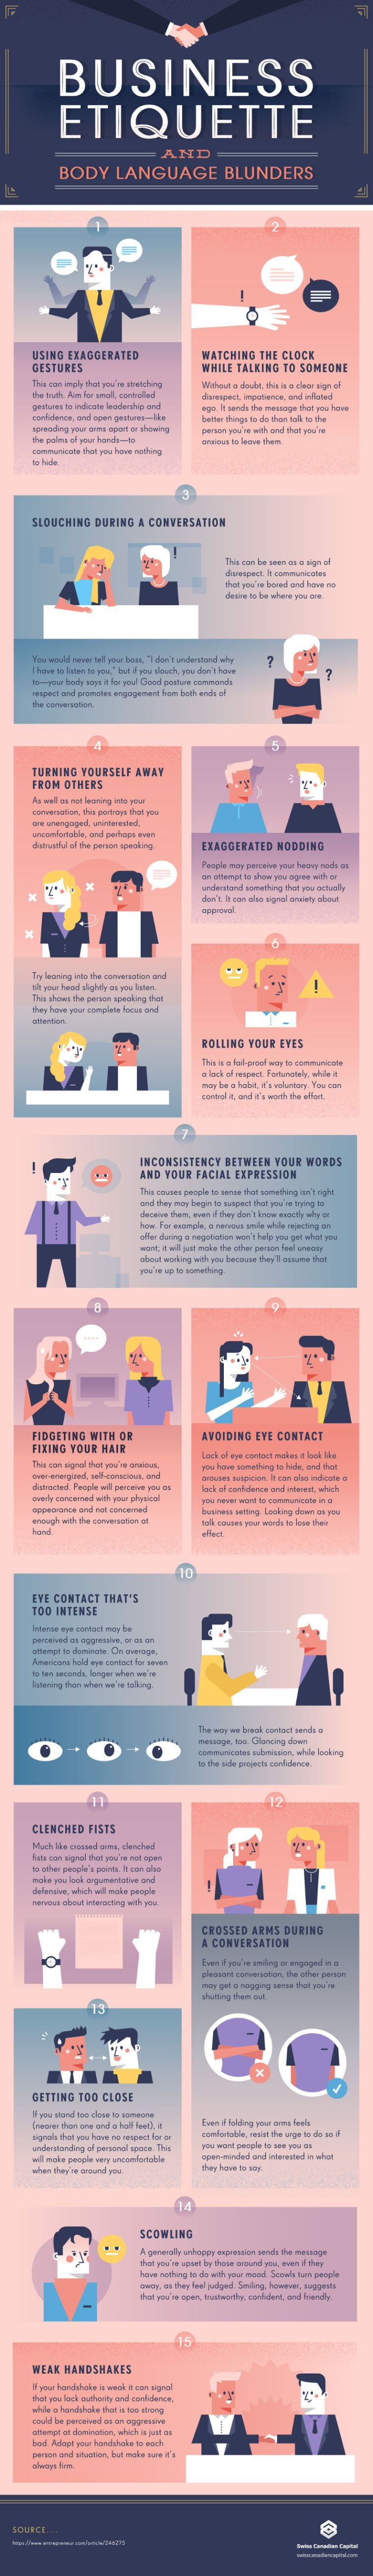 Business etiquette and body language infographic